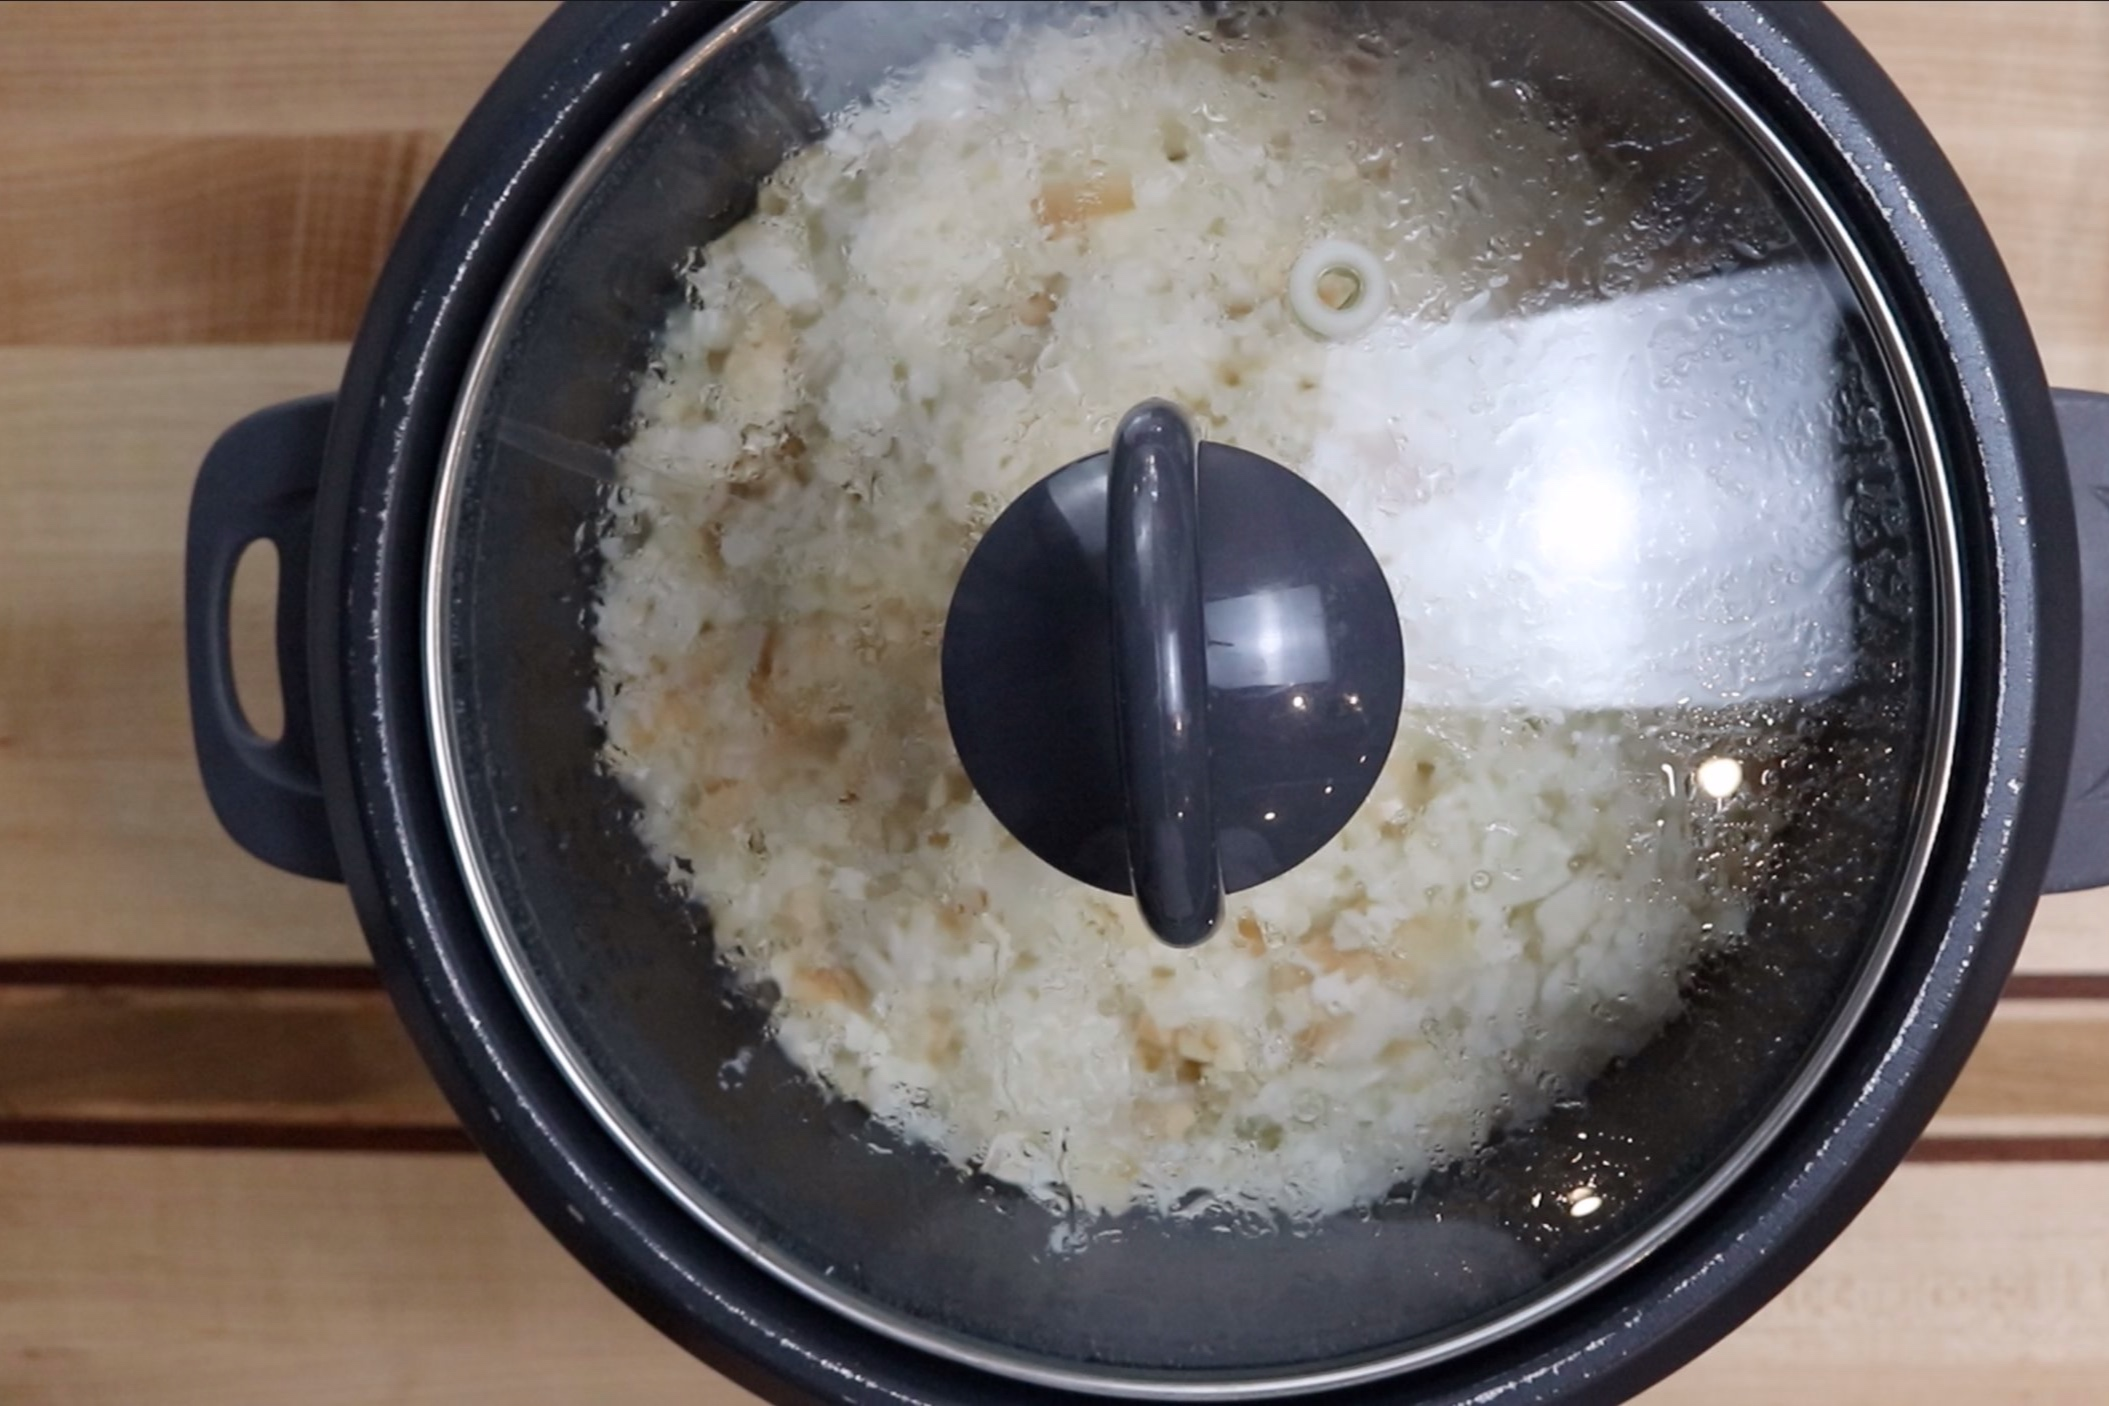 2. Cook according to rice cooker around 20 minutes. -